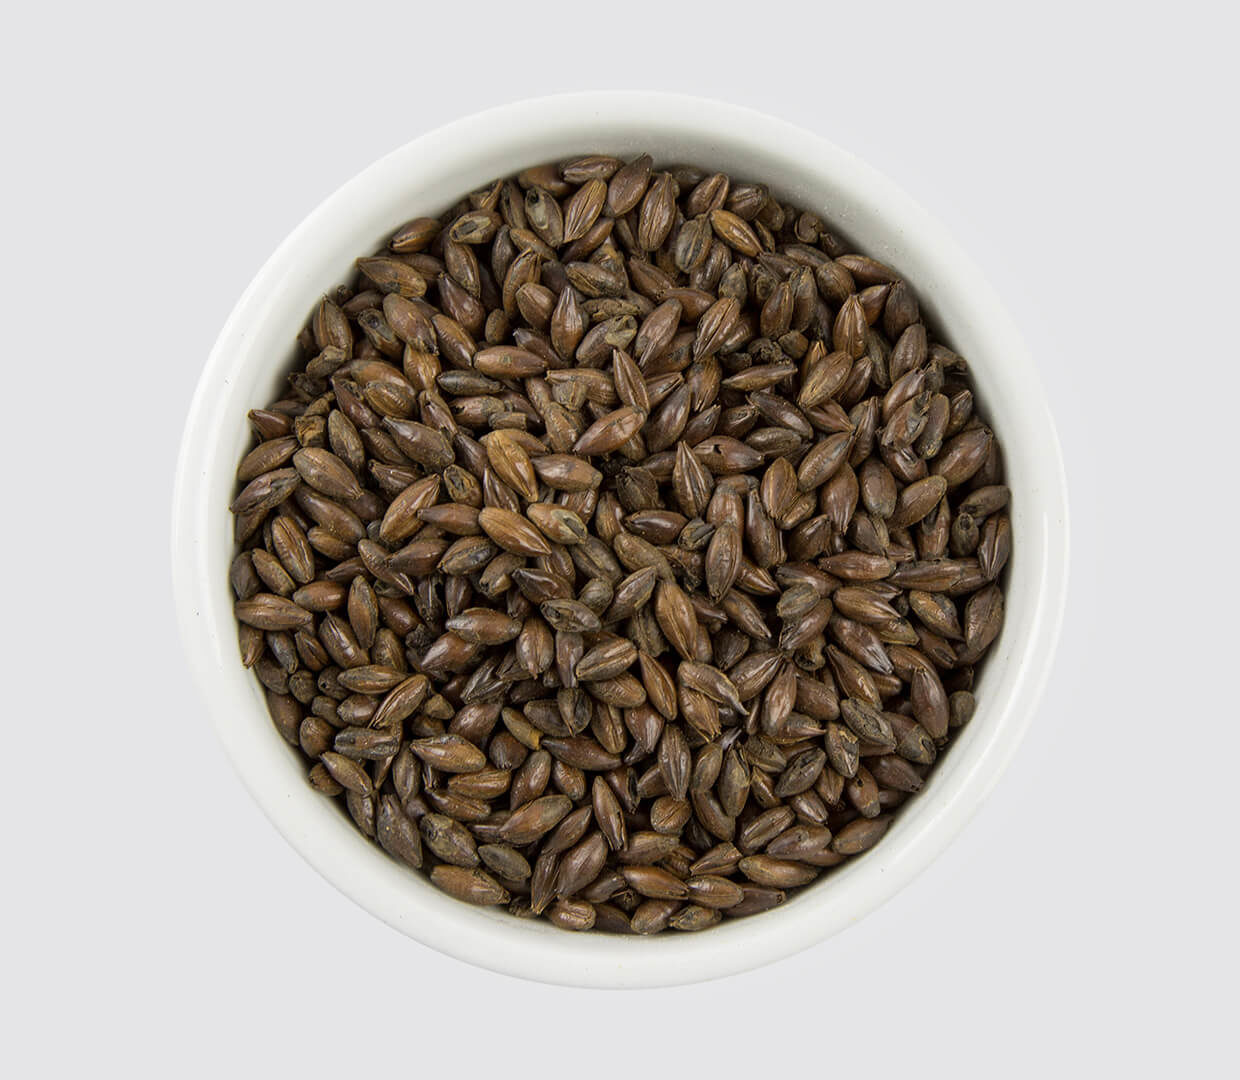 Whole Black Malt